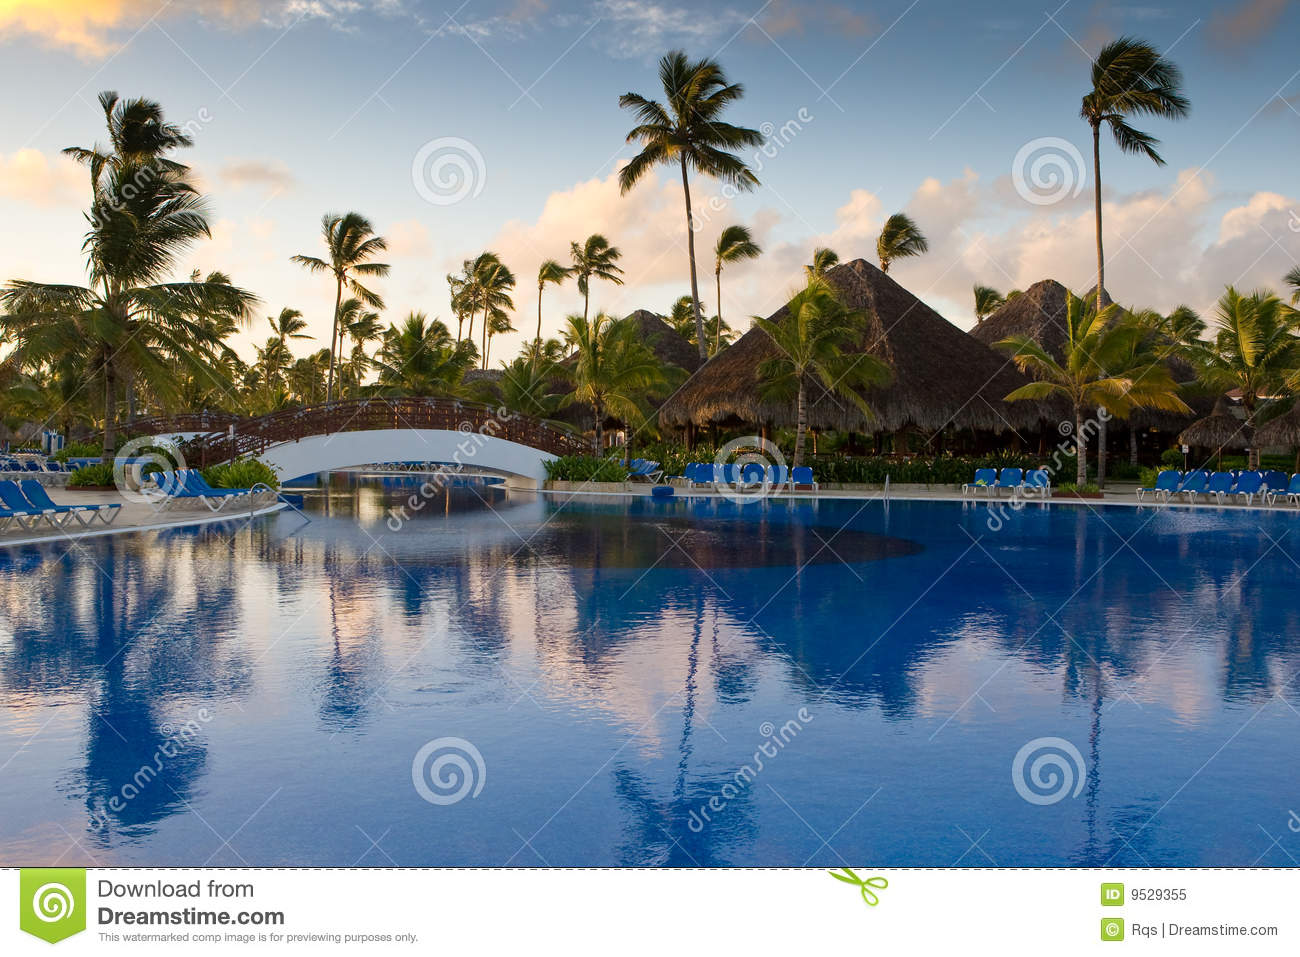 Pool with white bridge and palms